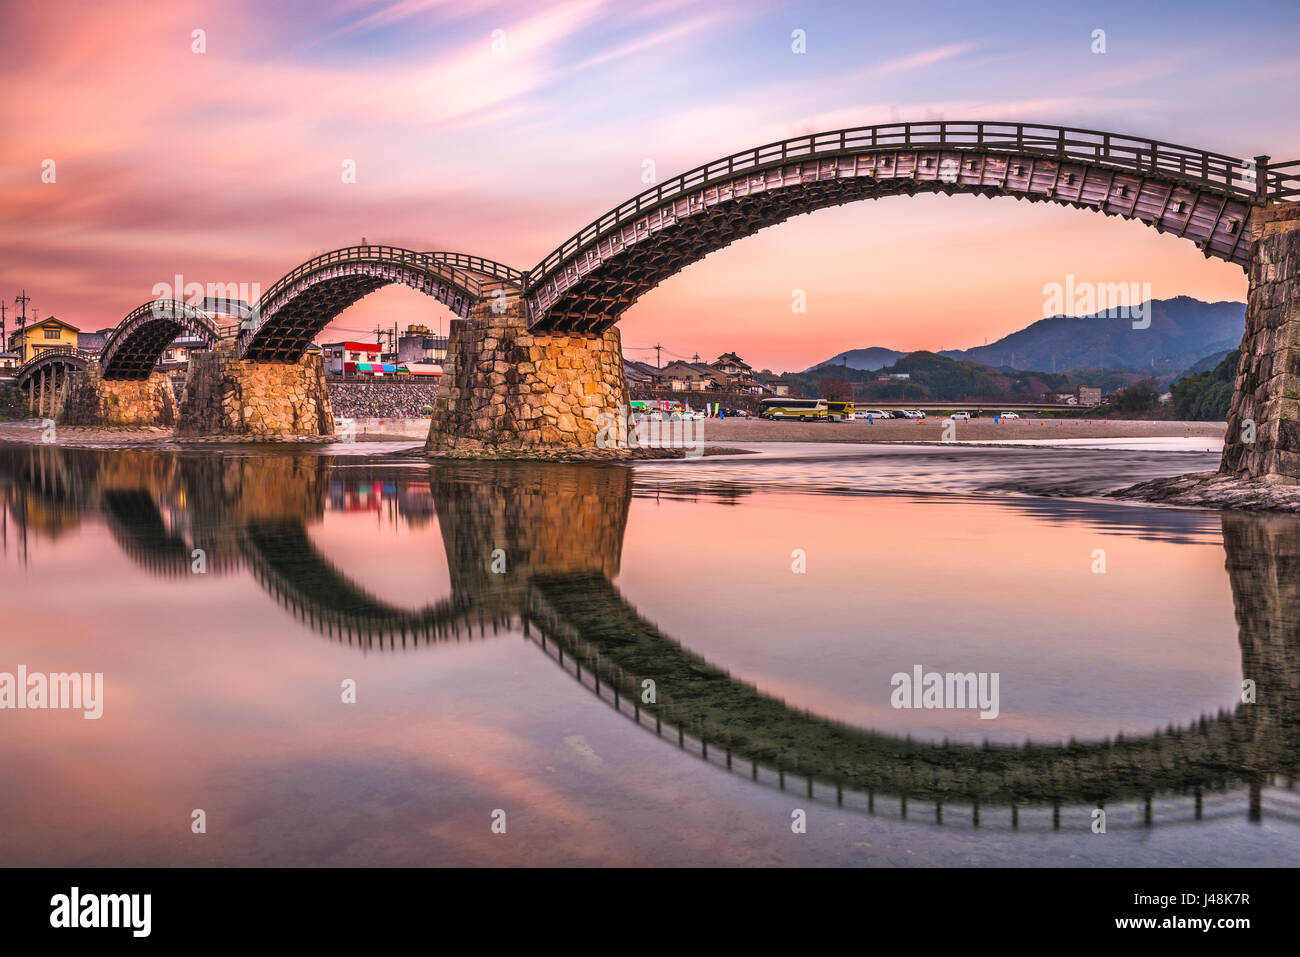 Iwakuni, Hiroshima, Japan at Kintaikyo Bridge at dusk. Stock Photo